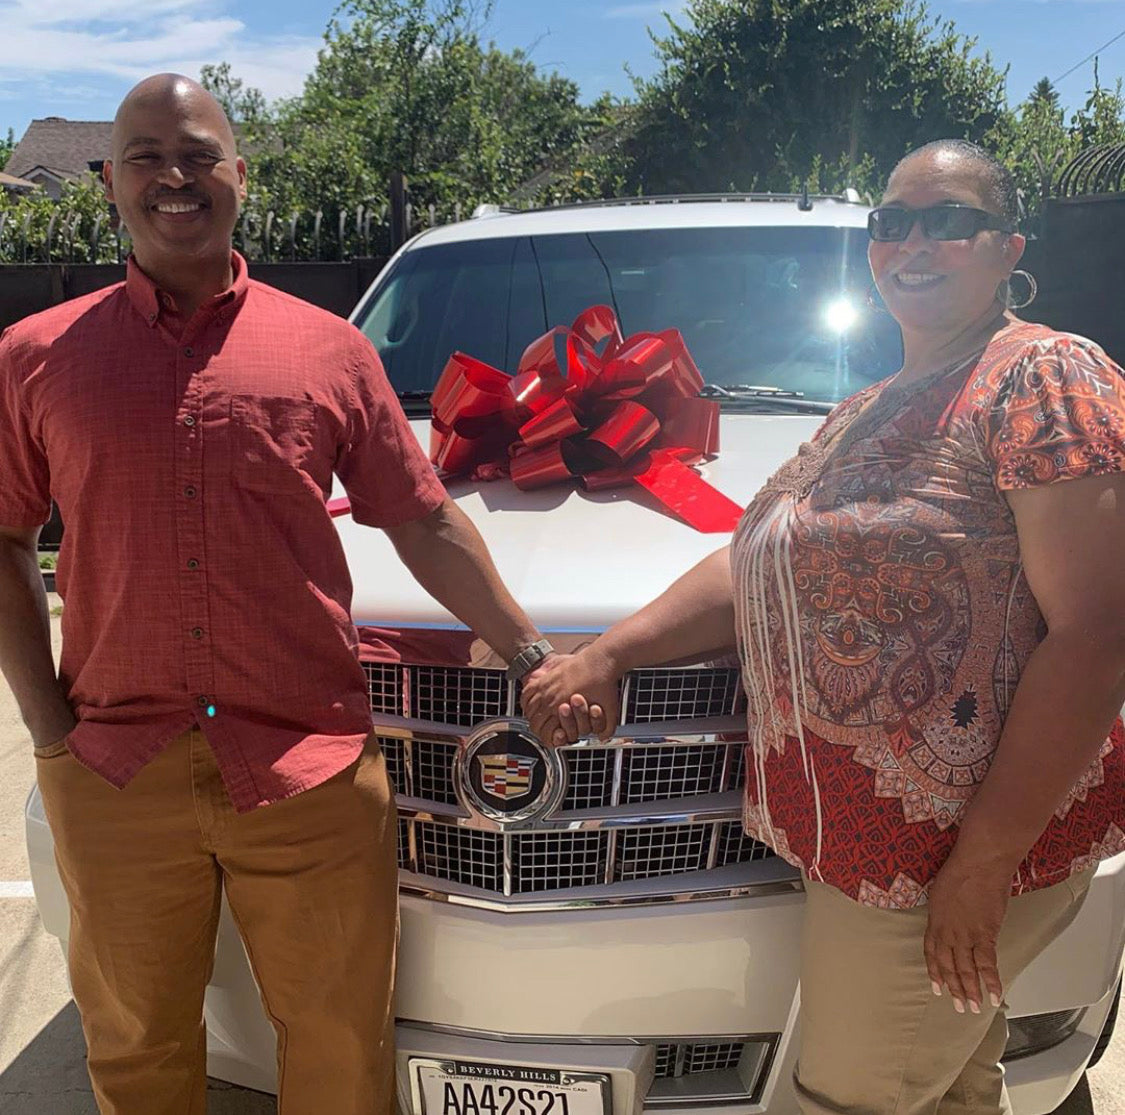 Happy couple loves their new Cadillac Escalade!